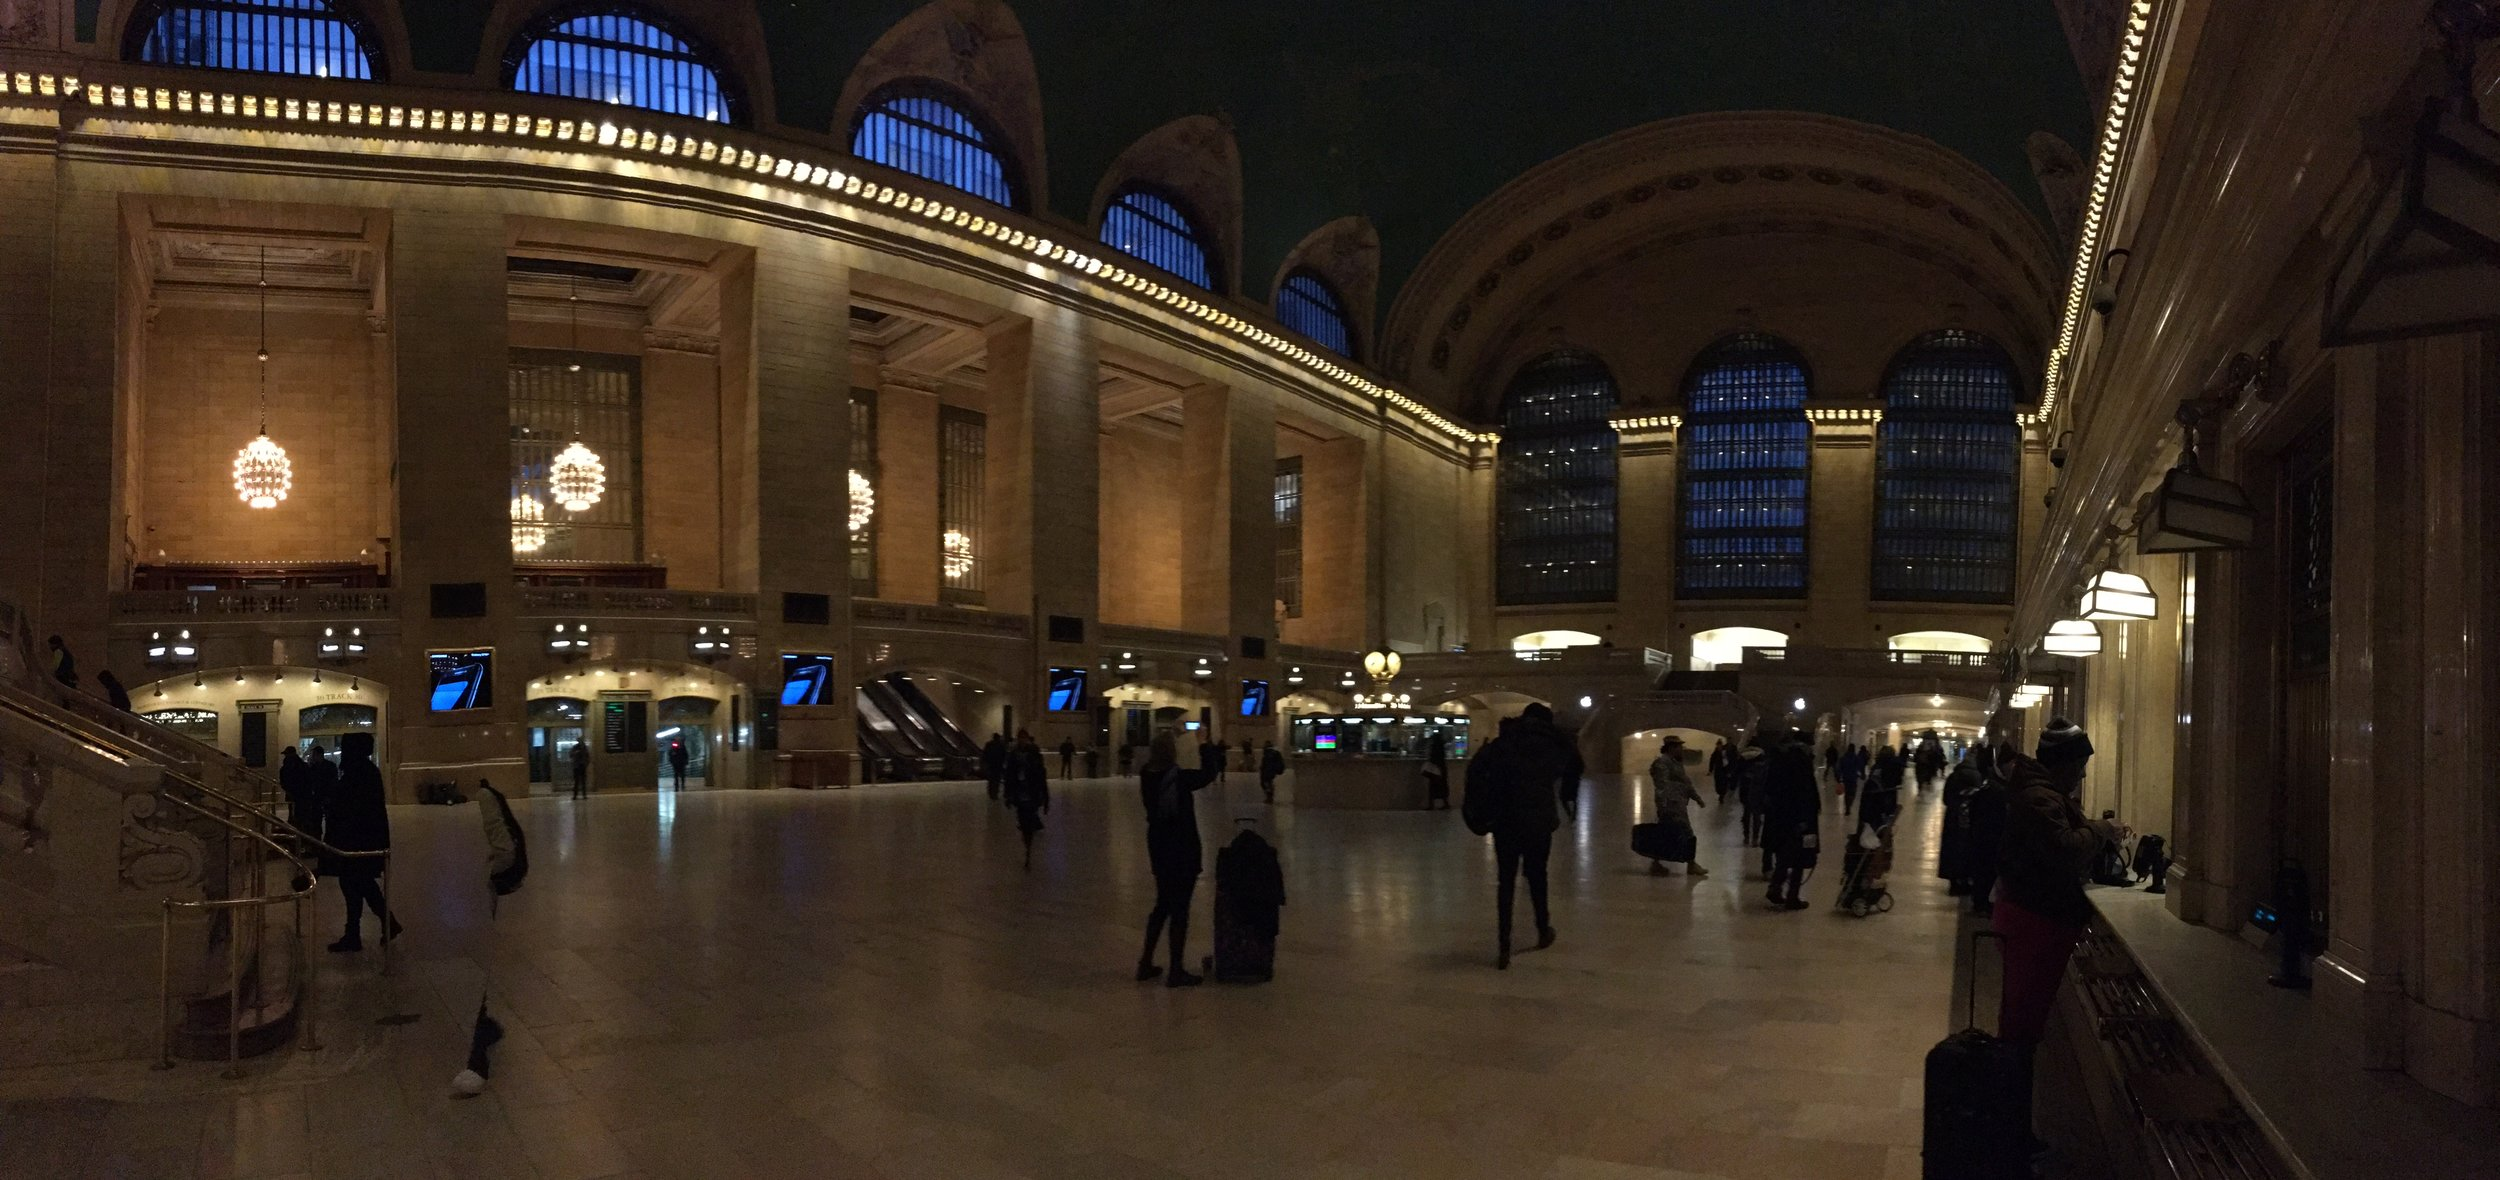 Grand Central Station - Drinking coffee and people watching